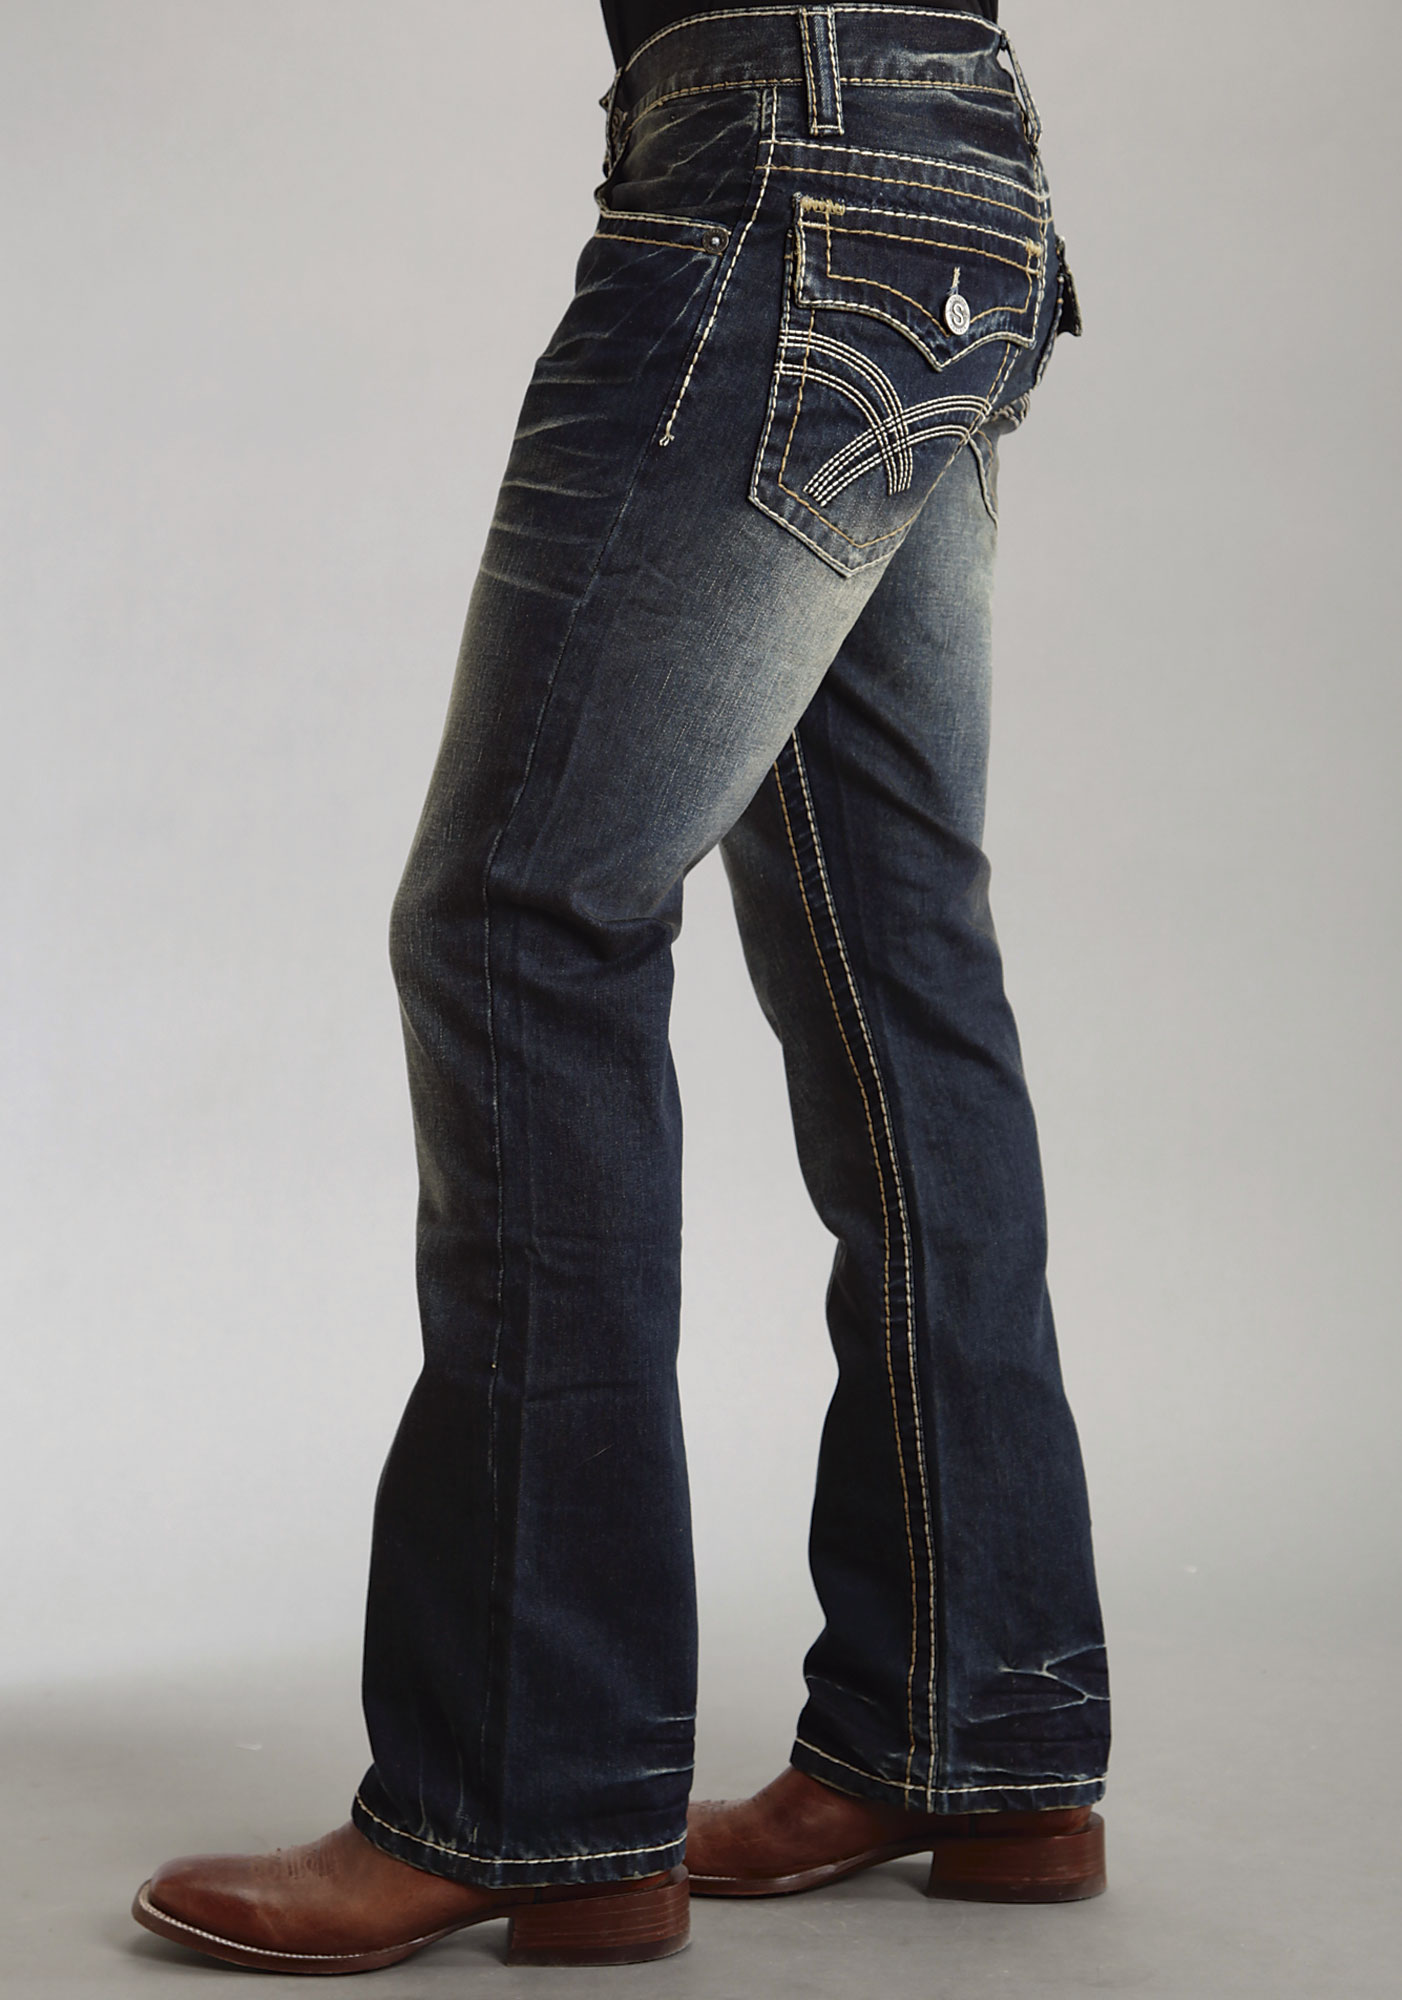 Shop Chico's for jeans & denim in short, tall and petite lengths. All in a variety of styles, washes and colors. Petite and missy sizes